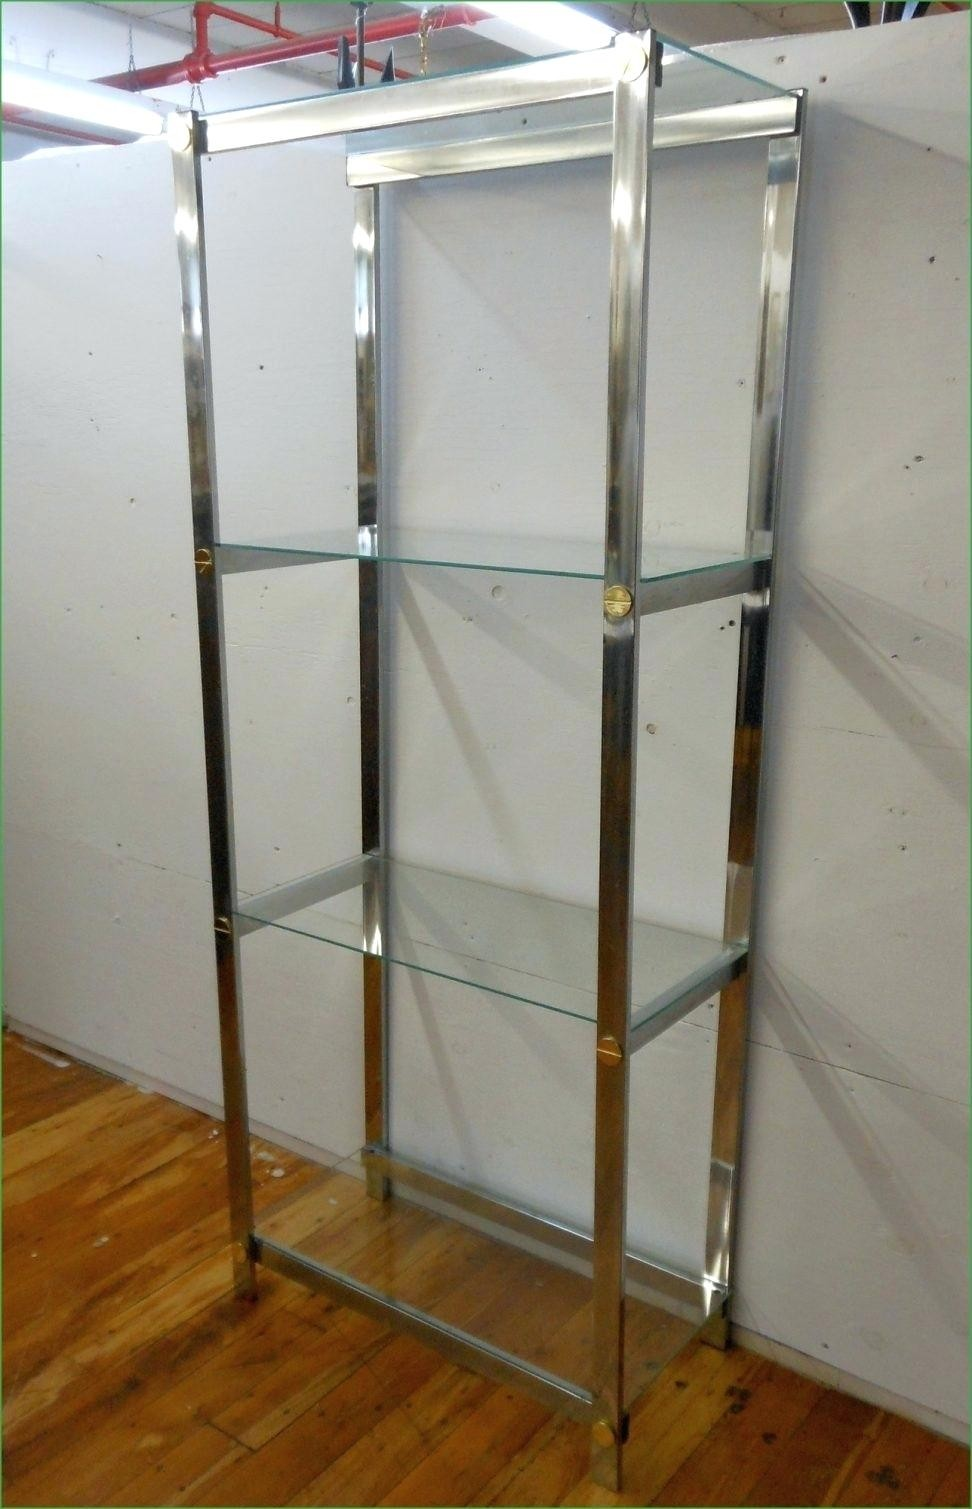 Metal and glass bookcase Narrow Retro Chrome Glass Shelves Brass Screw Detail Modern Bookcase Etagere Foter Chrome Bookcases Ideas On Foter